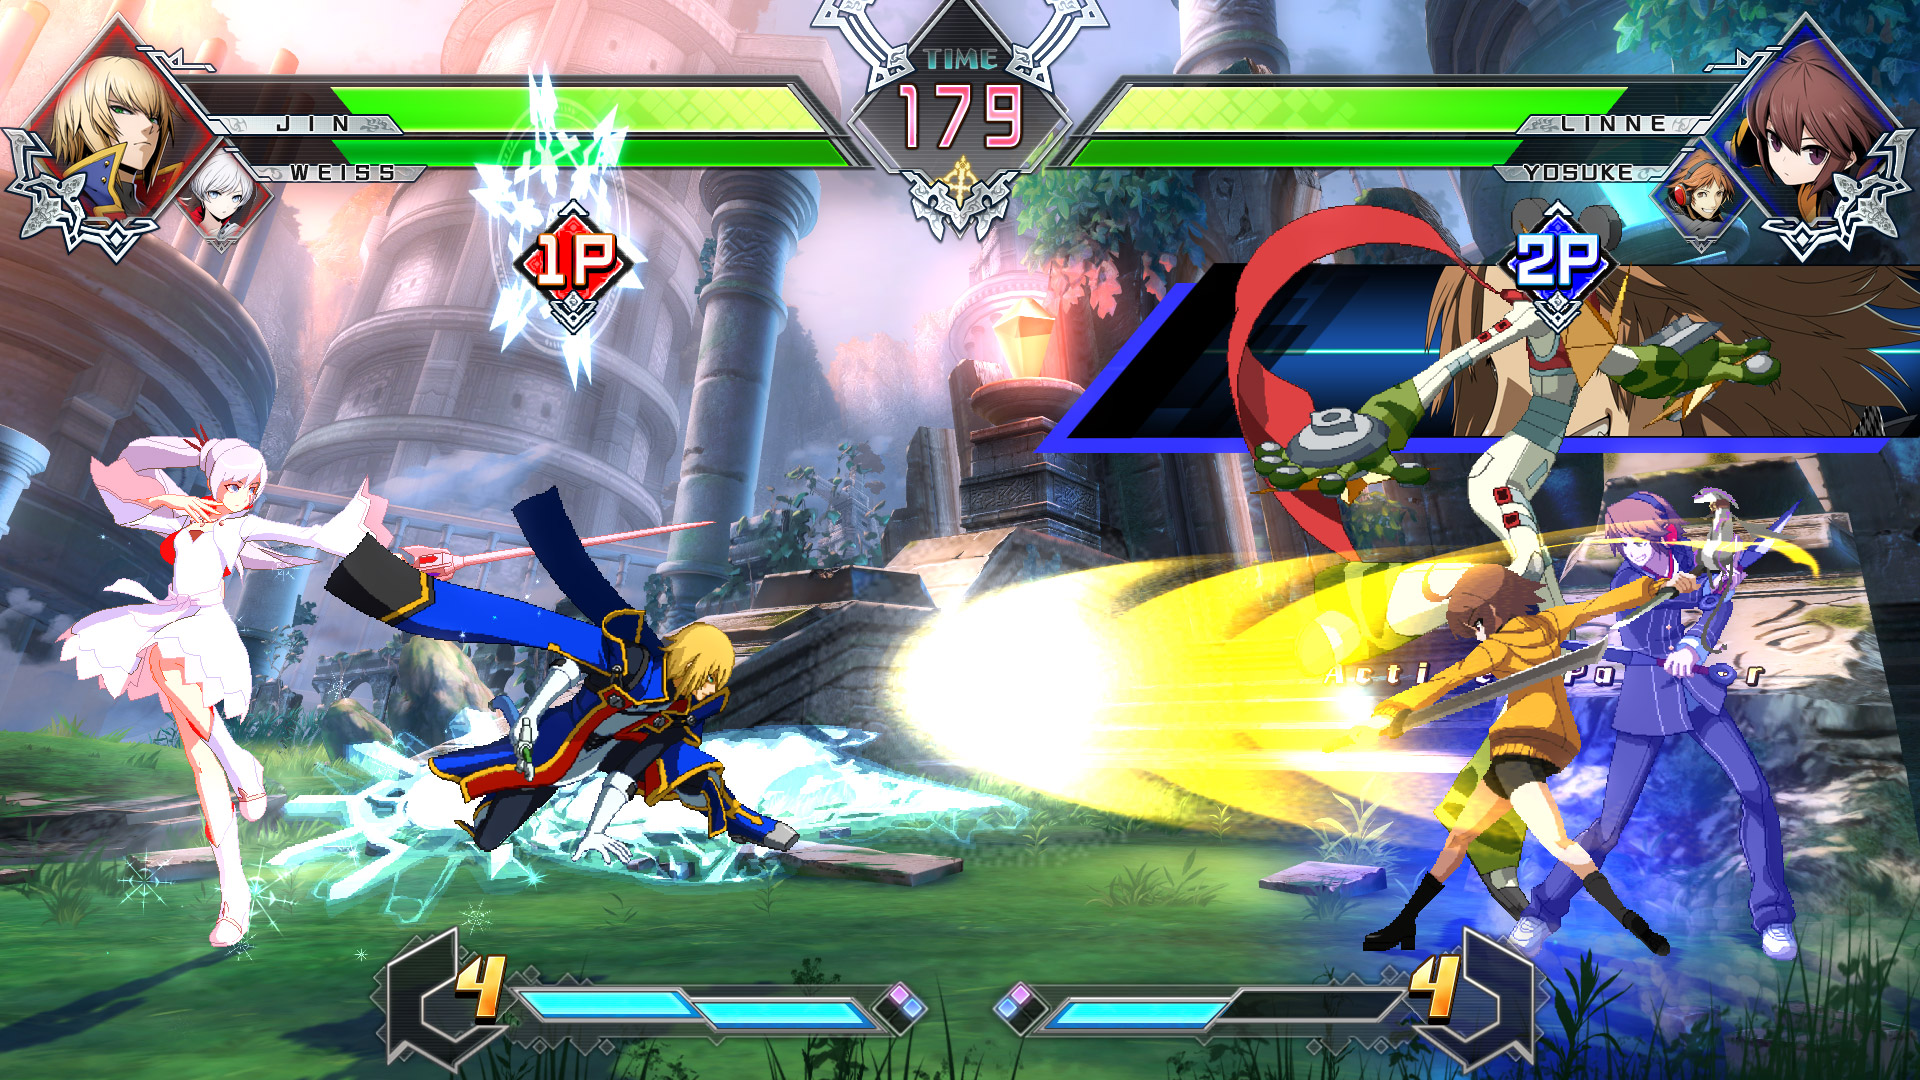 blazblue-cross-tag-battle-08-arc-system-works